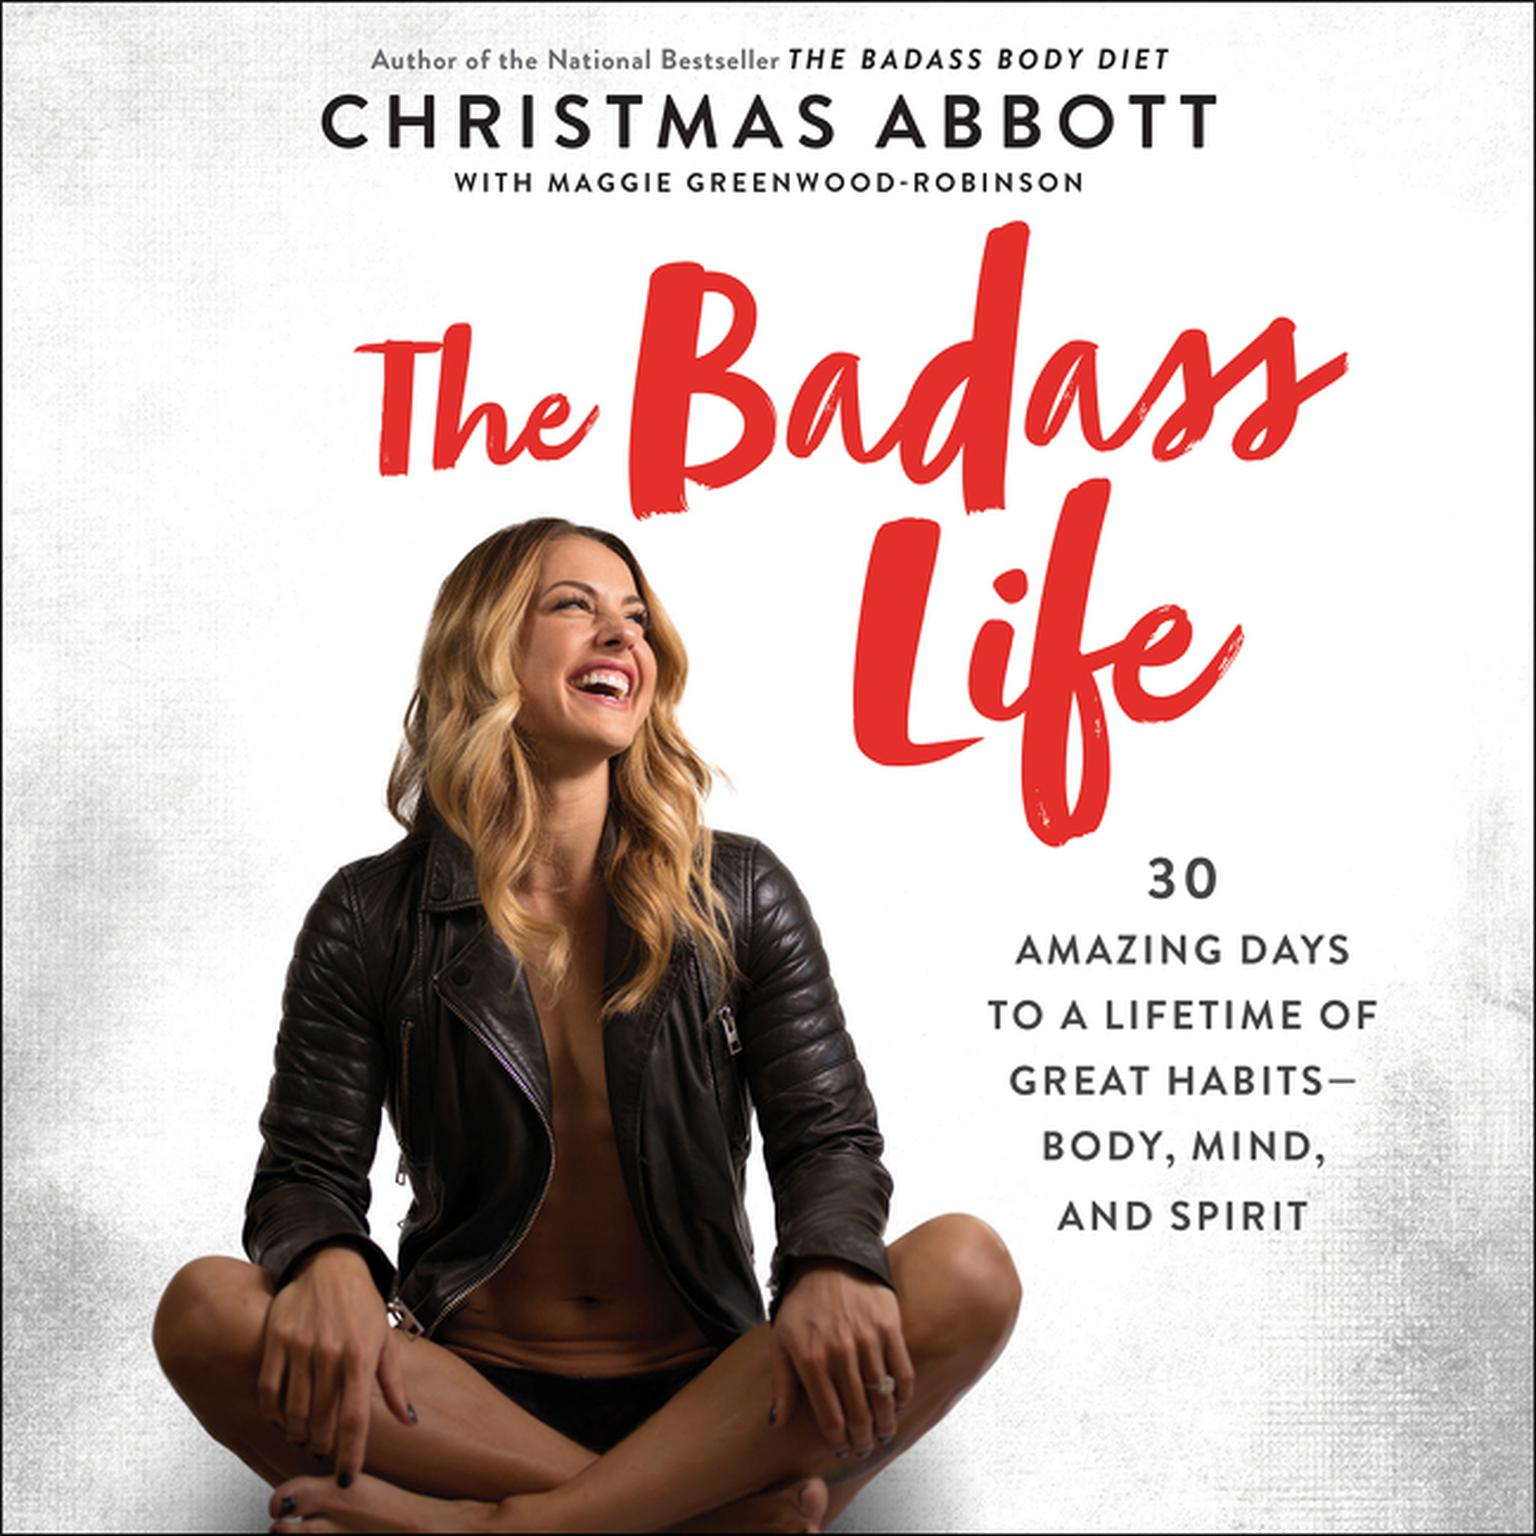 The Badass Life: 30 Amazing Days to a Lifetime of Great Habits--Body, Mind, and Spirit Audiobook, by Christmas Abbott